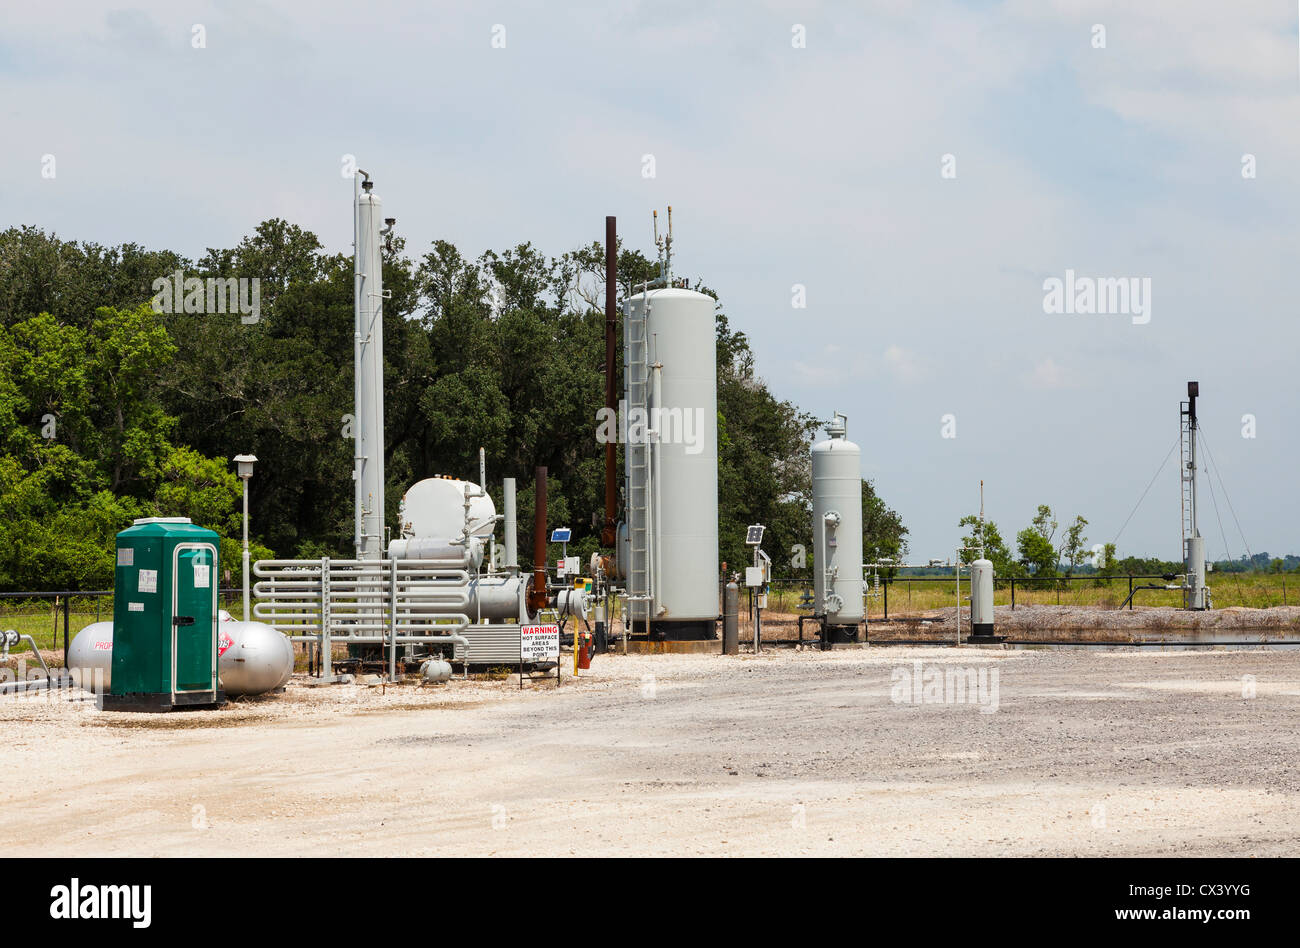 Remote crude oil pumping and truck loading facility for rural oil wells, showing flaring system. - Stock Image